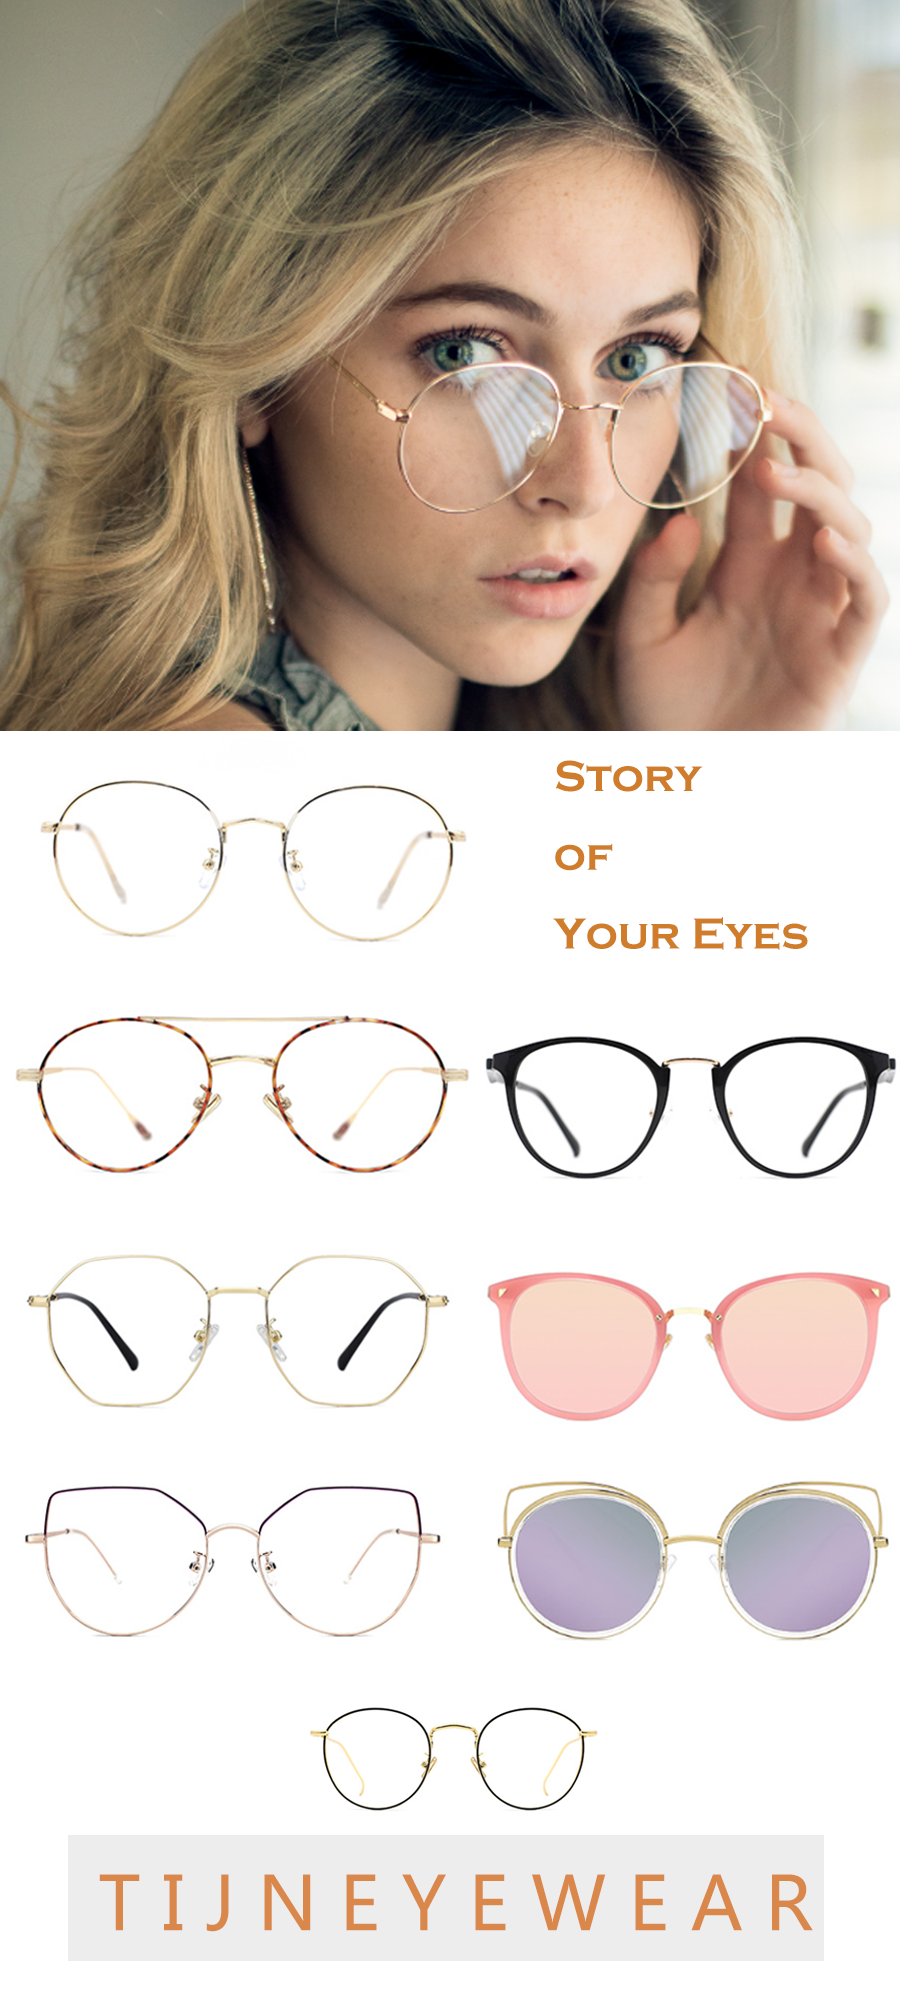 66708f16859 How to be fashion with an eye-wear  You may get a new look.Top sale glasses  in 2018.  eyewear  fashion eyewear  sunglasses eye  fashion accessories   fashion ...